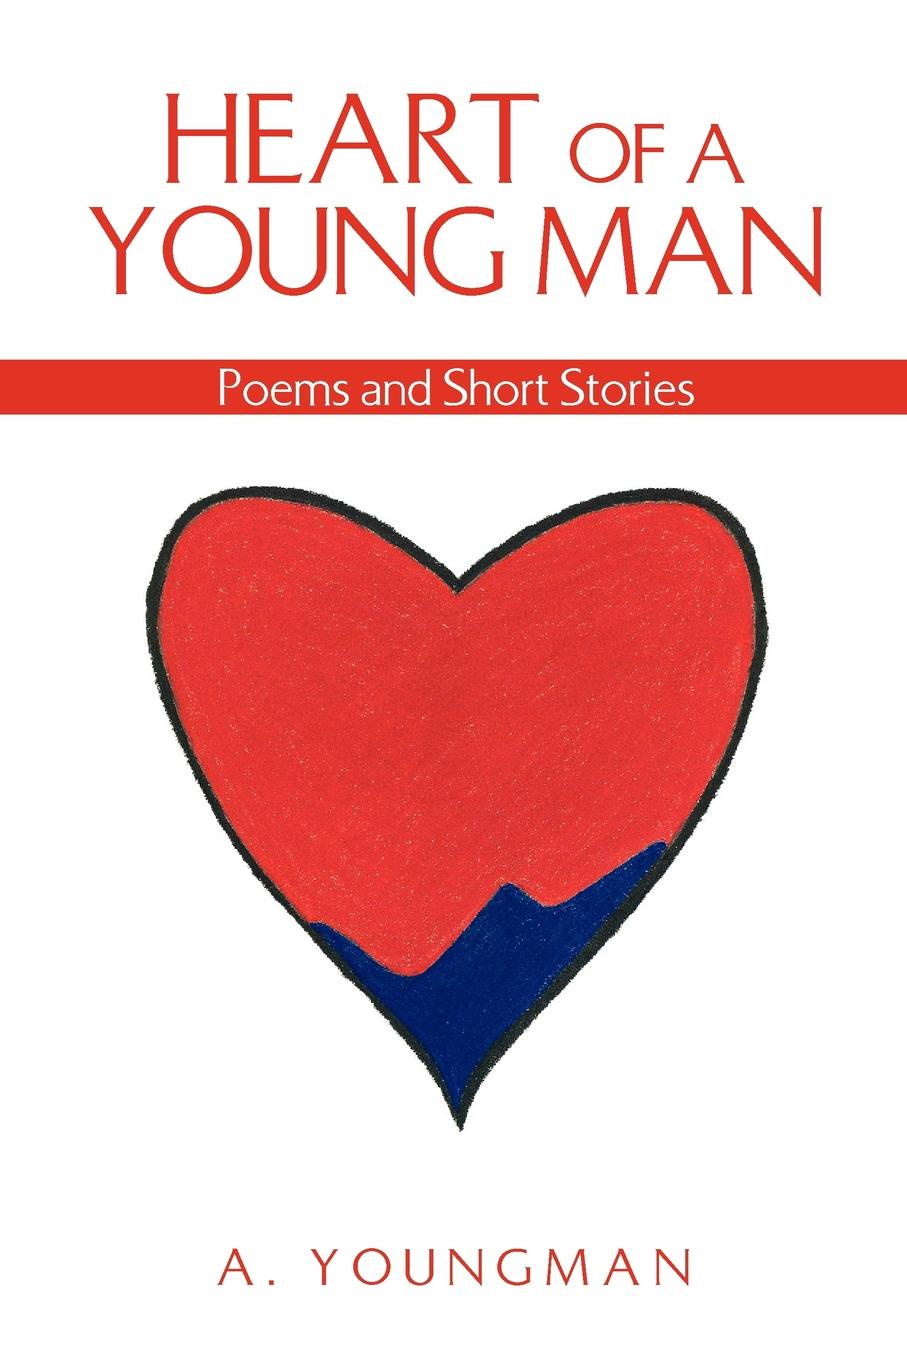 A. Youngman Heart of a Young Man benjamin waterhouse a journal of a young man of massachusetts 2nd ed